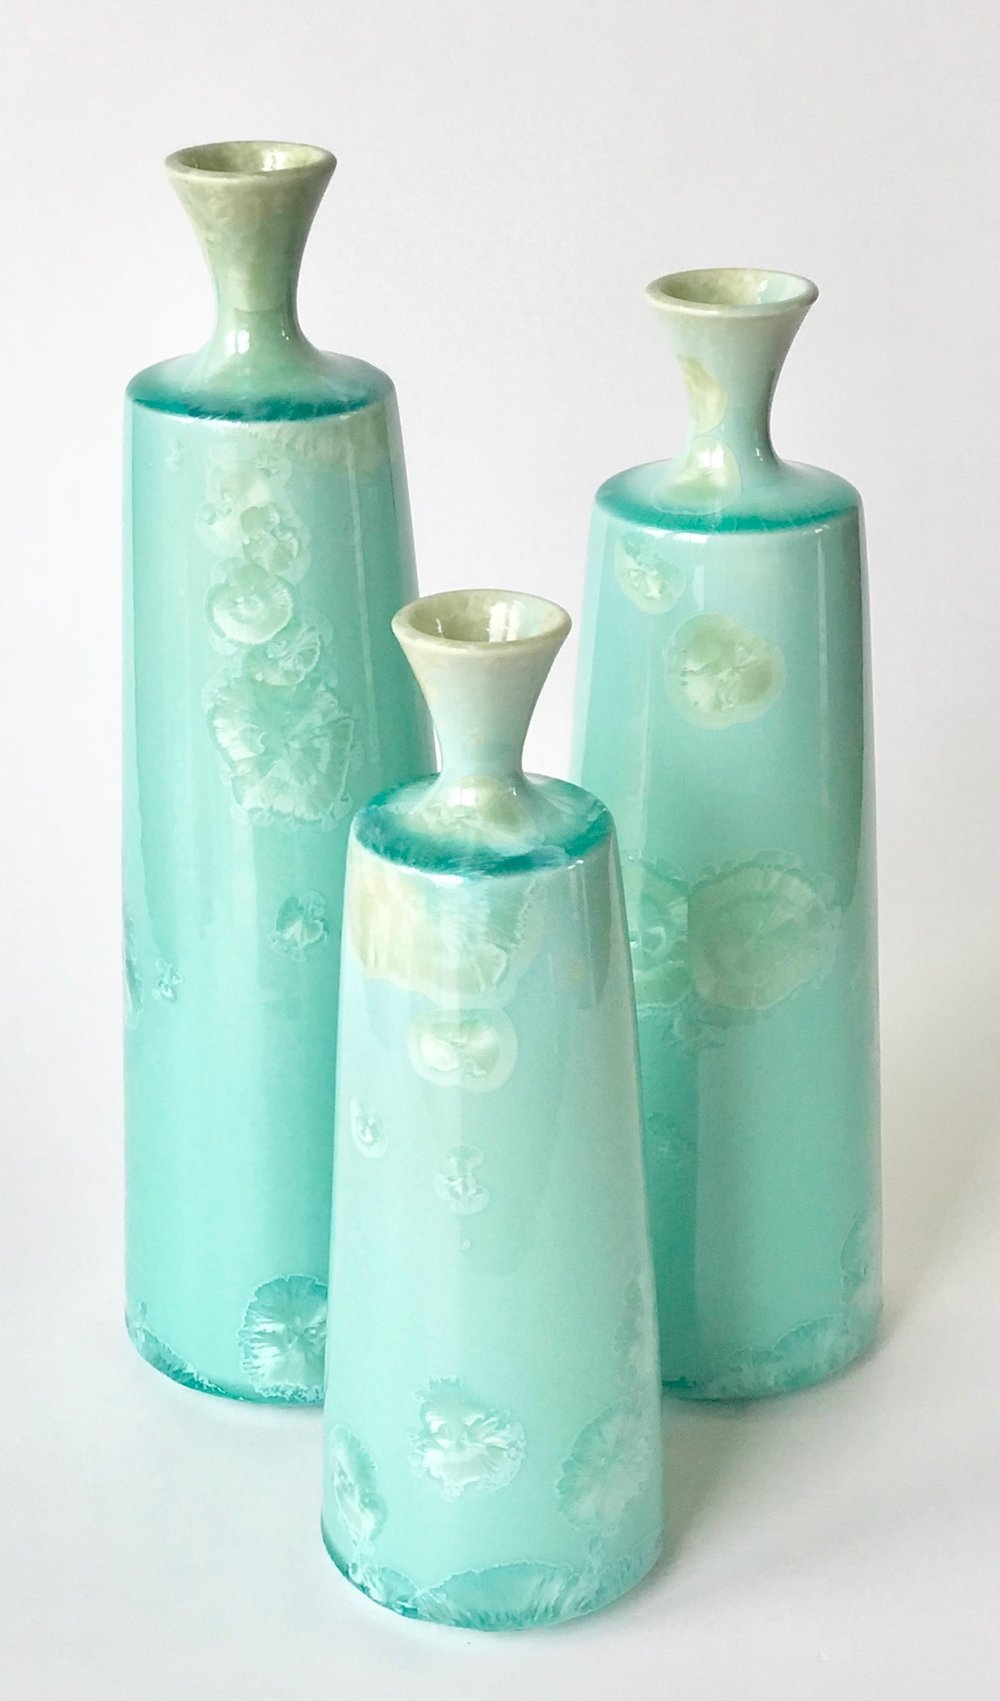 Ted Secombe 43.  Set of 3 Bottles , 2018, porcelain, aquamarine gloss crystalline glaze, heights 34, 31 & 26cm